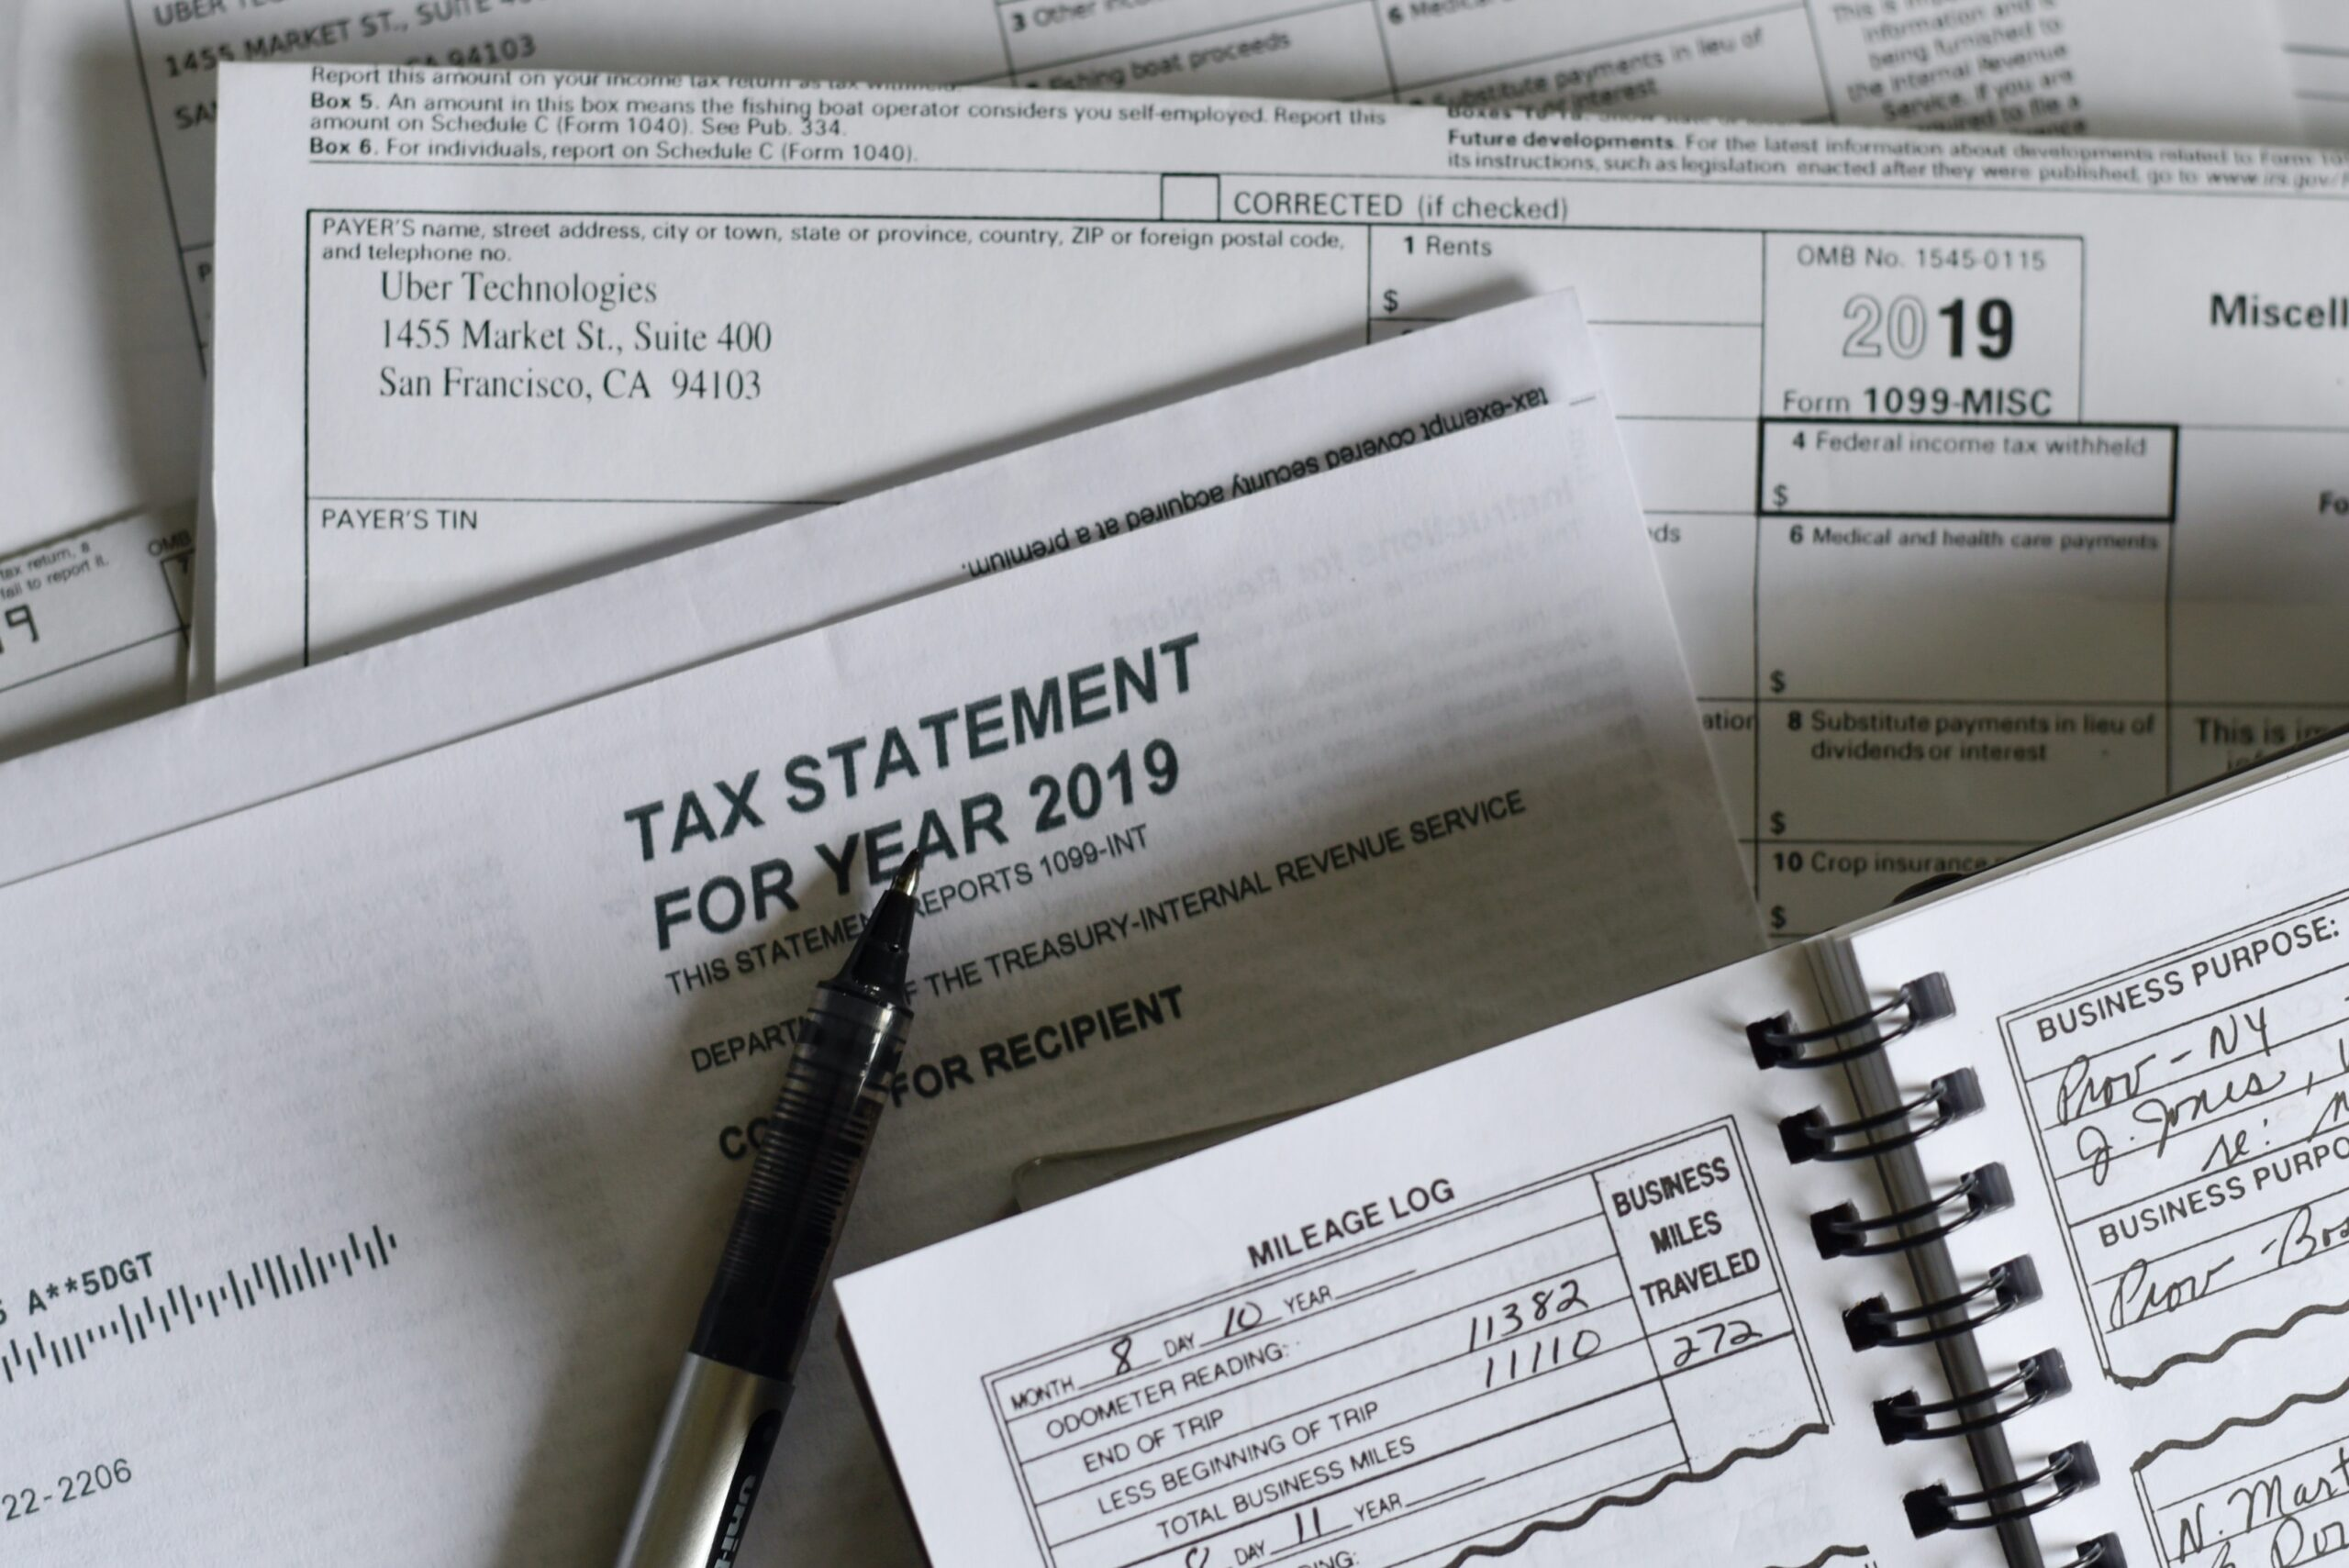 India Ranks High among Asian Nations in Corporate Tax Evasion